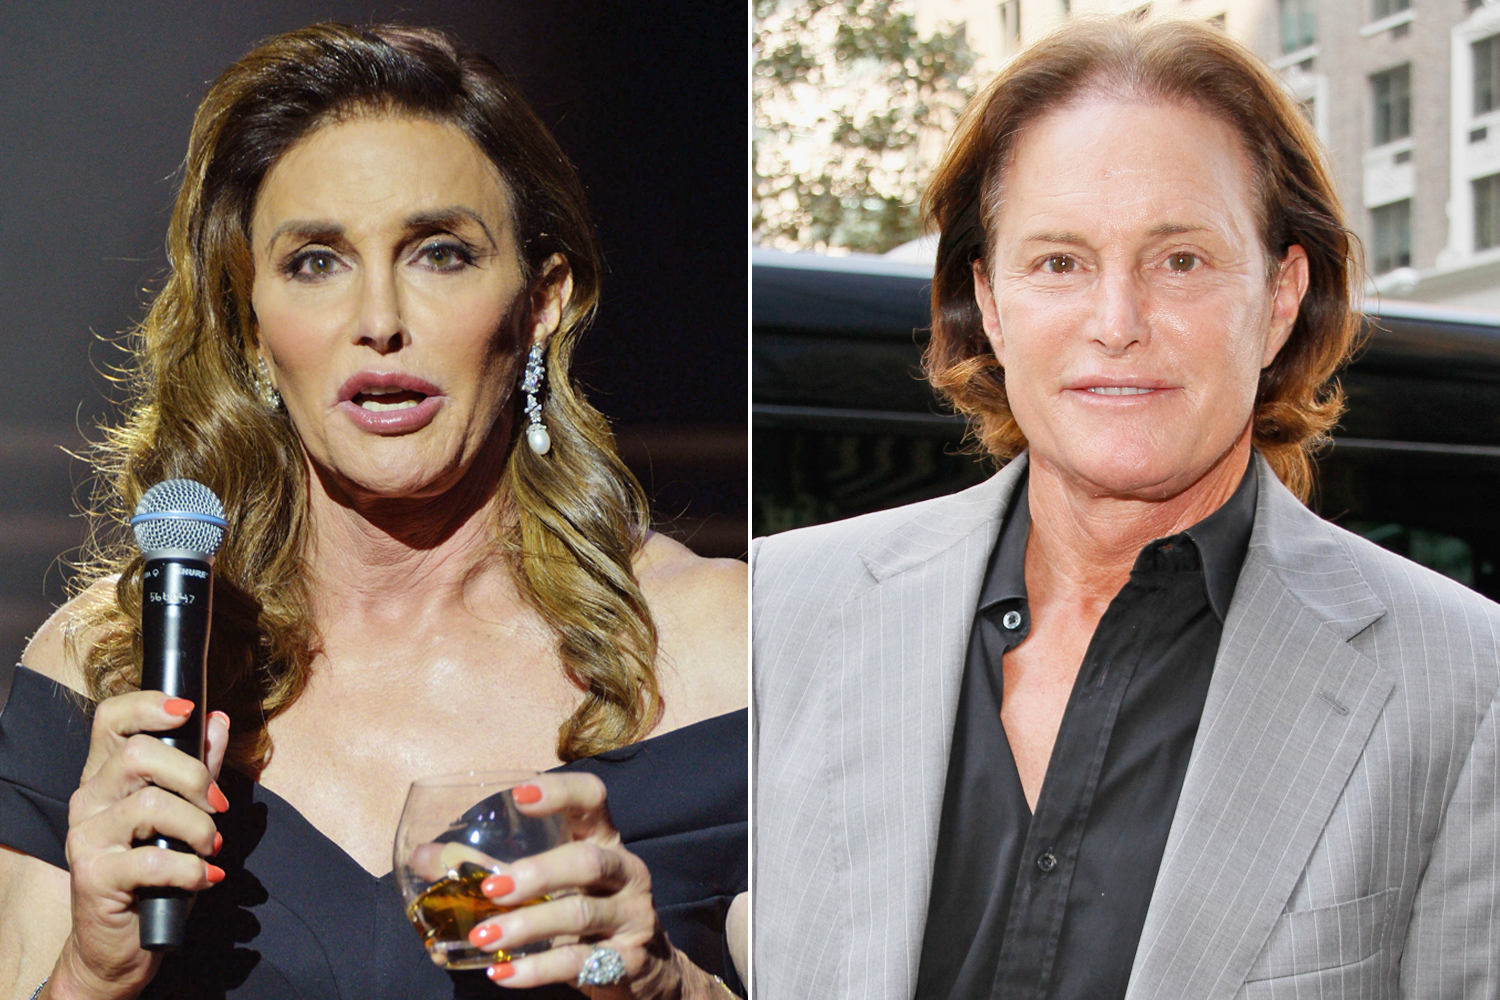 Did Bruce Jenner Get His Dick Cut Off photo 10